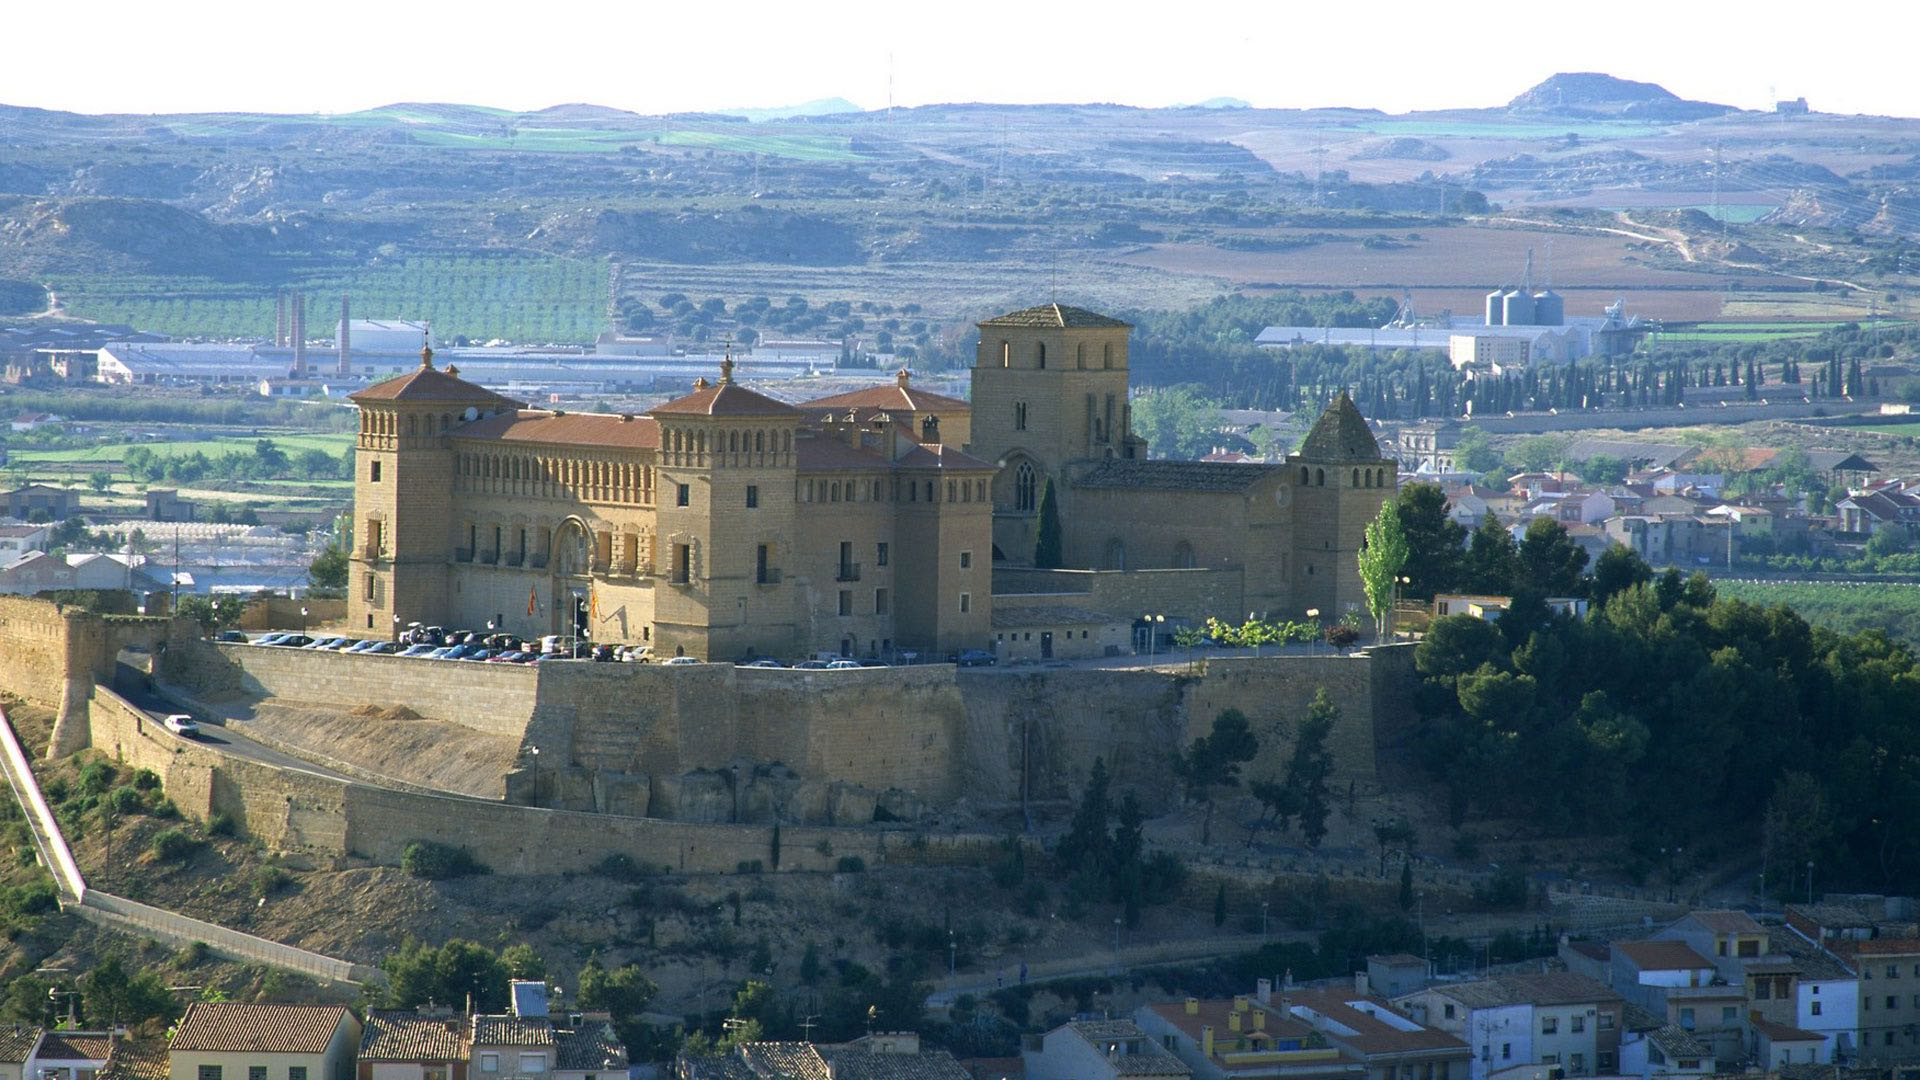 Spanish Castles as part of motorcycle tour